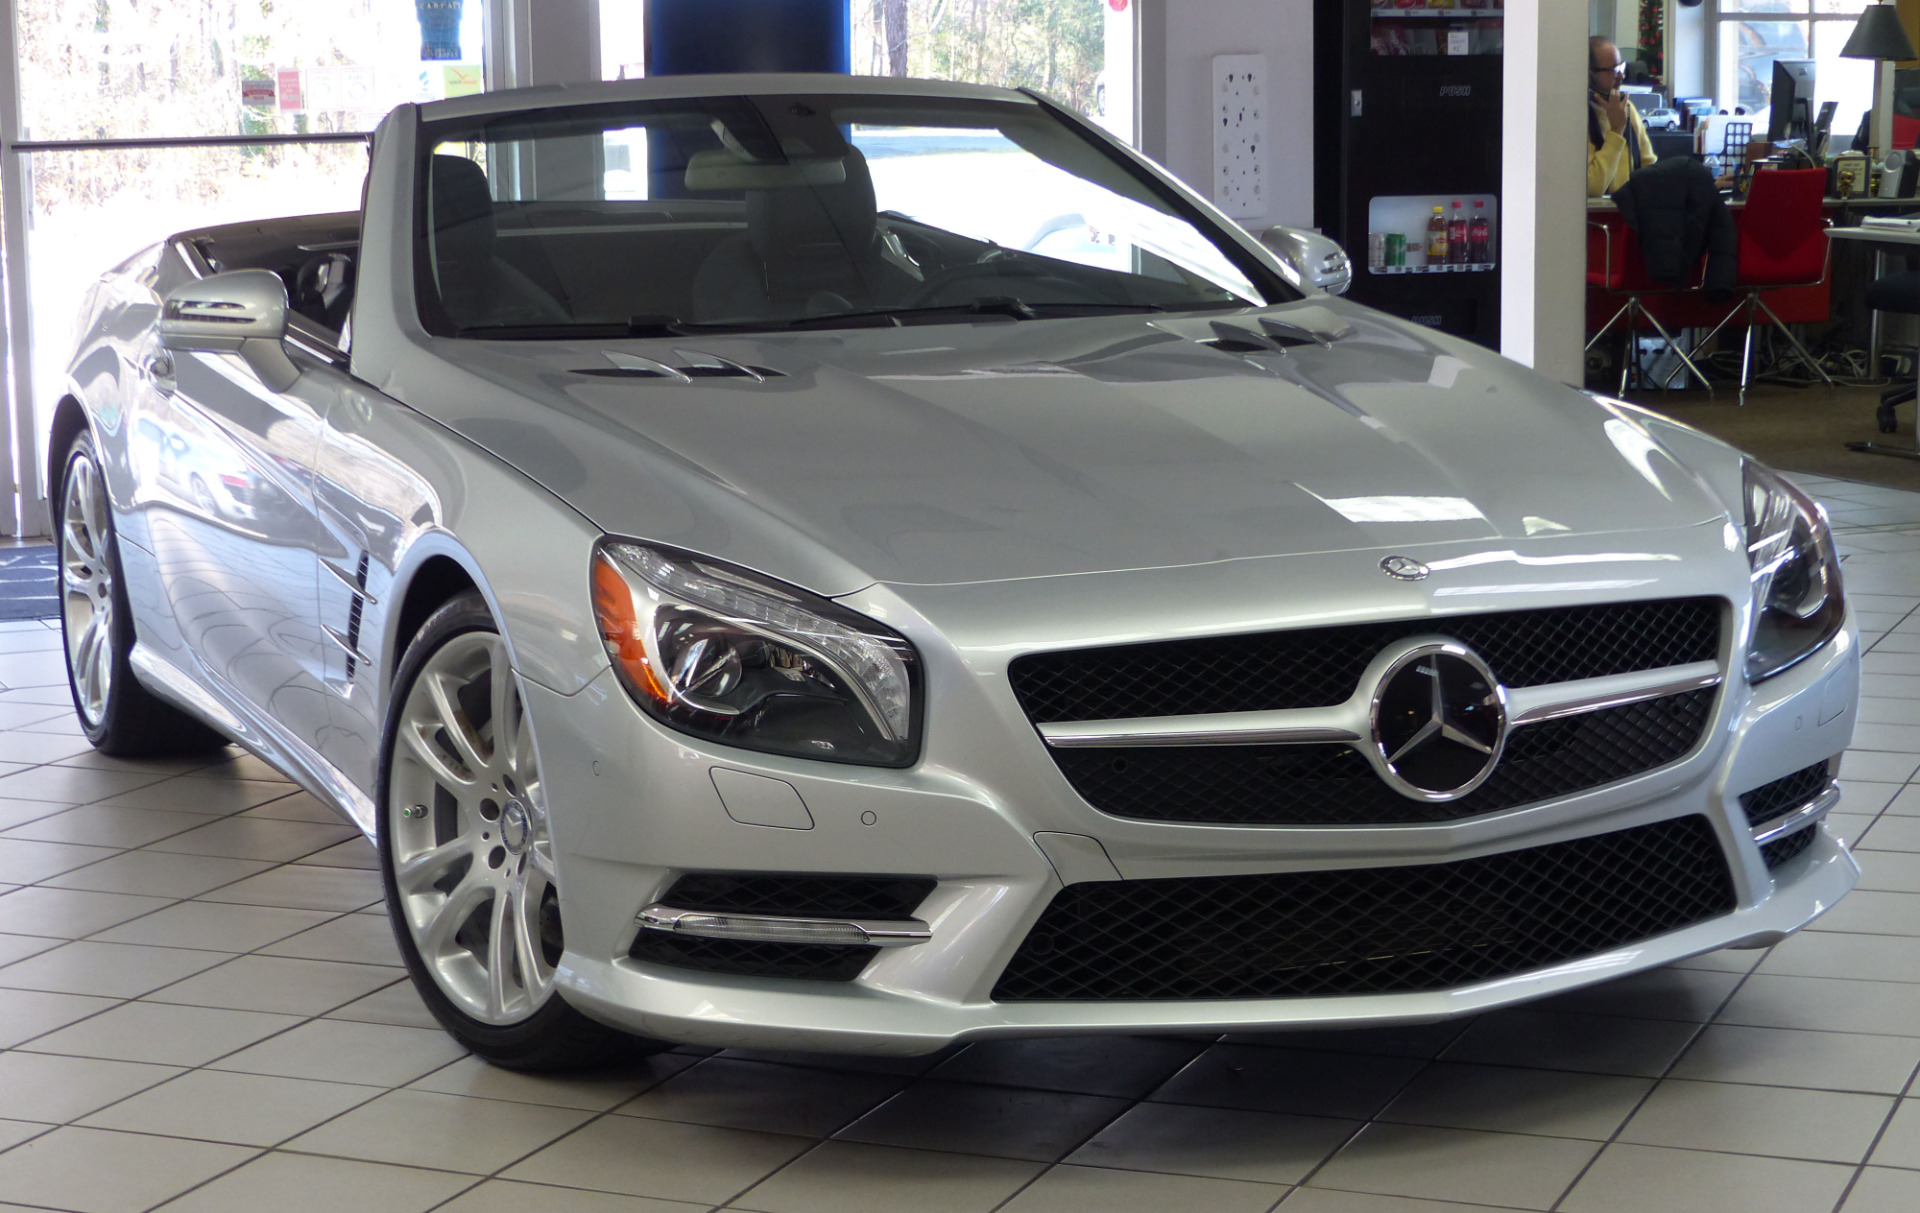 Used 2013 mercedes benz sl class sl550 cabriolet for Used mercedes benz sl550